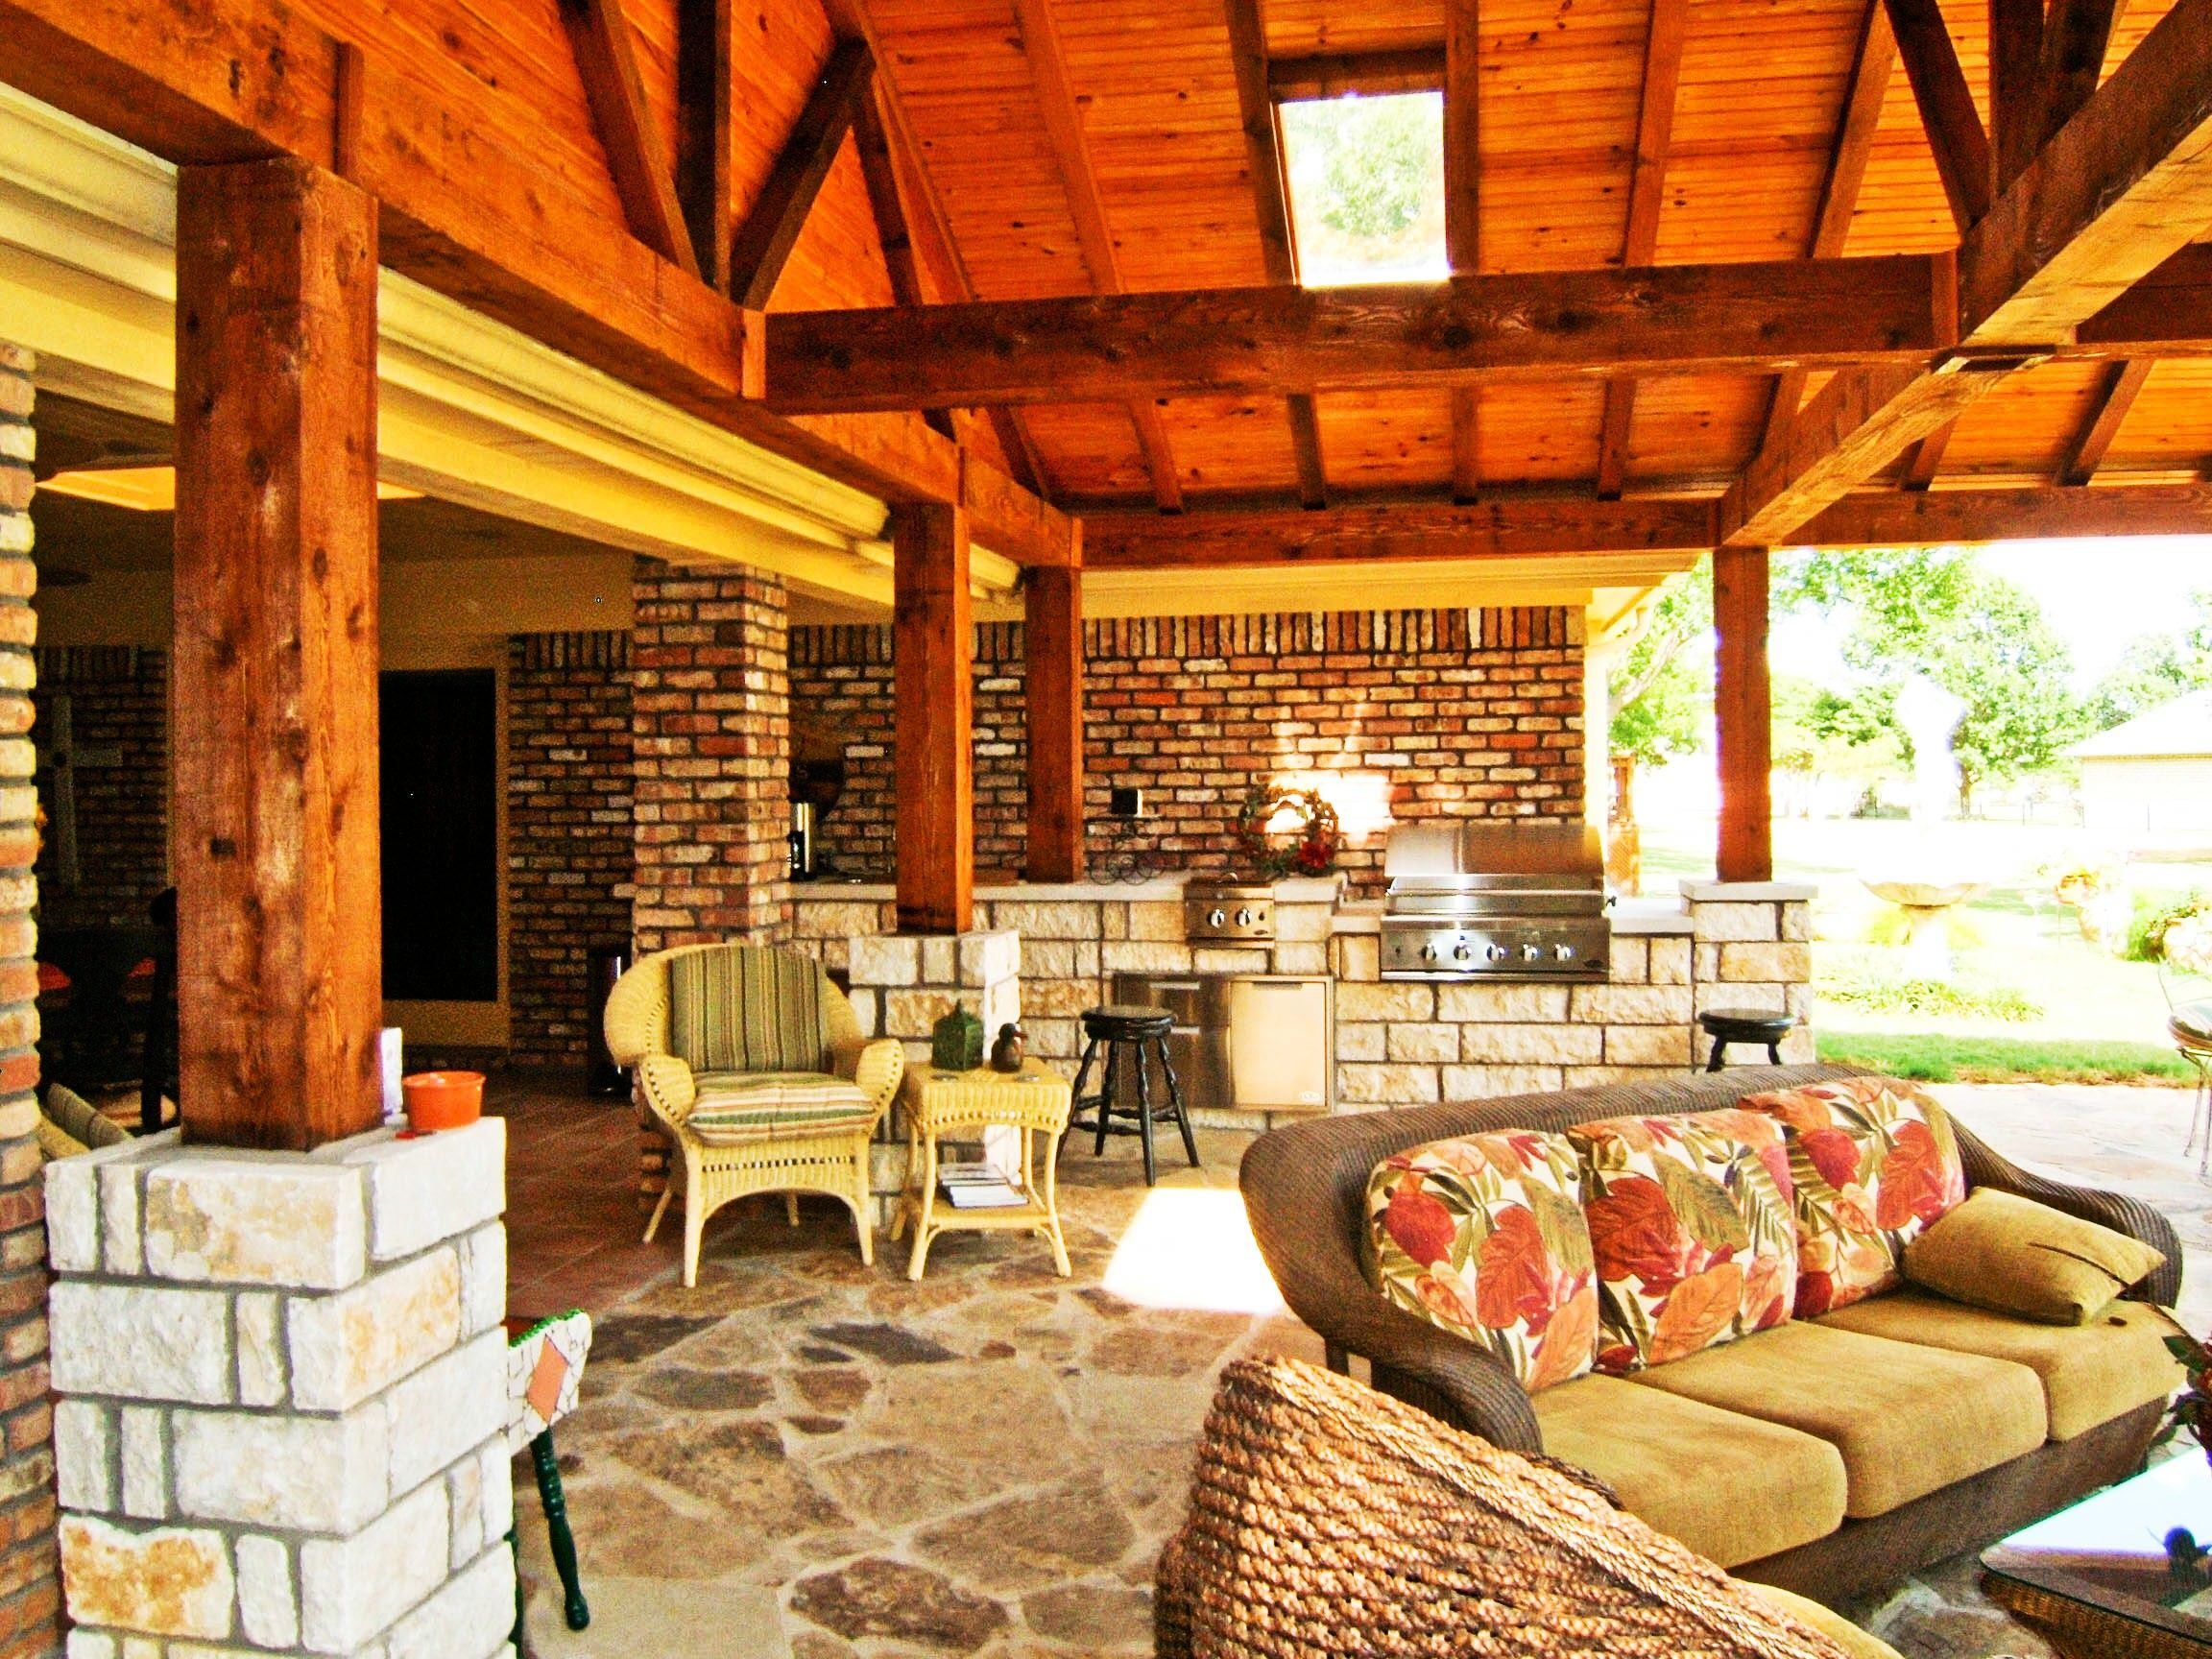 High Quality Outdoor Kitchens Offered By Premier Deck U0026 Patios In San  Antonio TX. Affordable